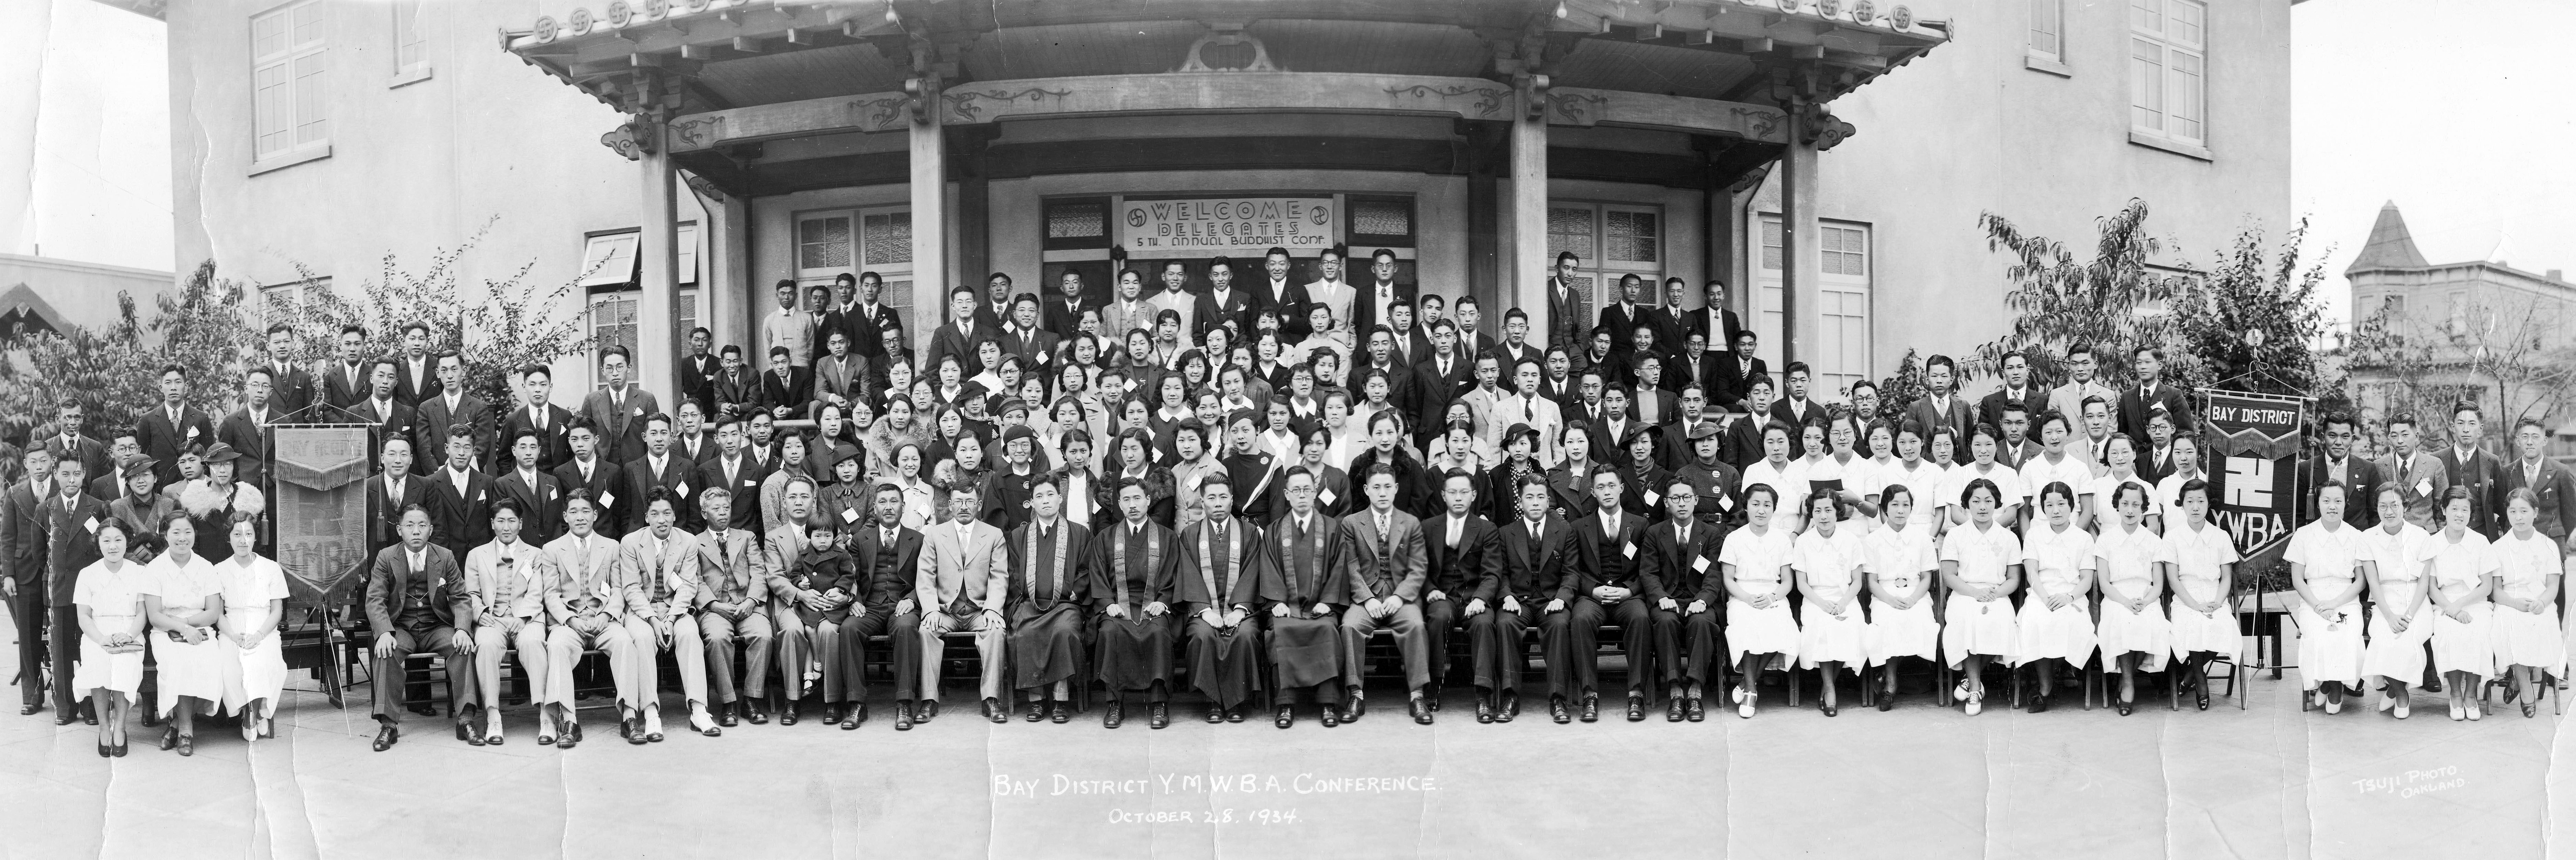 oakland buddhist single women Oakland's chinatown  oakland chinatown not only promoted sales of bonds  this chapter ended with two pictures, one wedding in buddhist ceremony with .